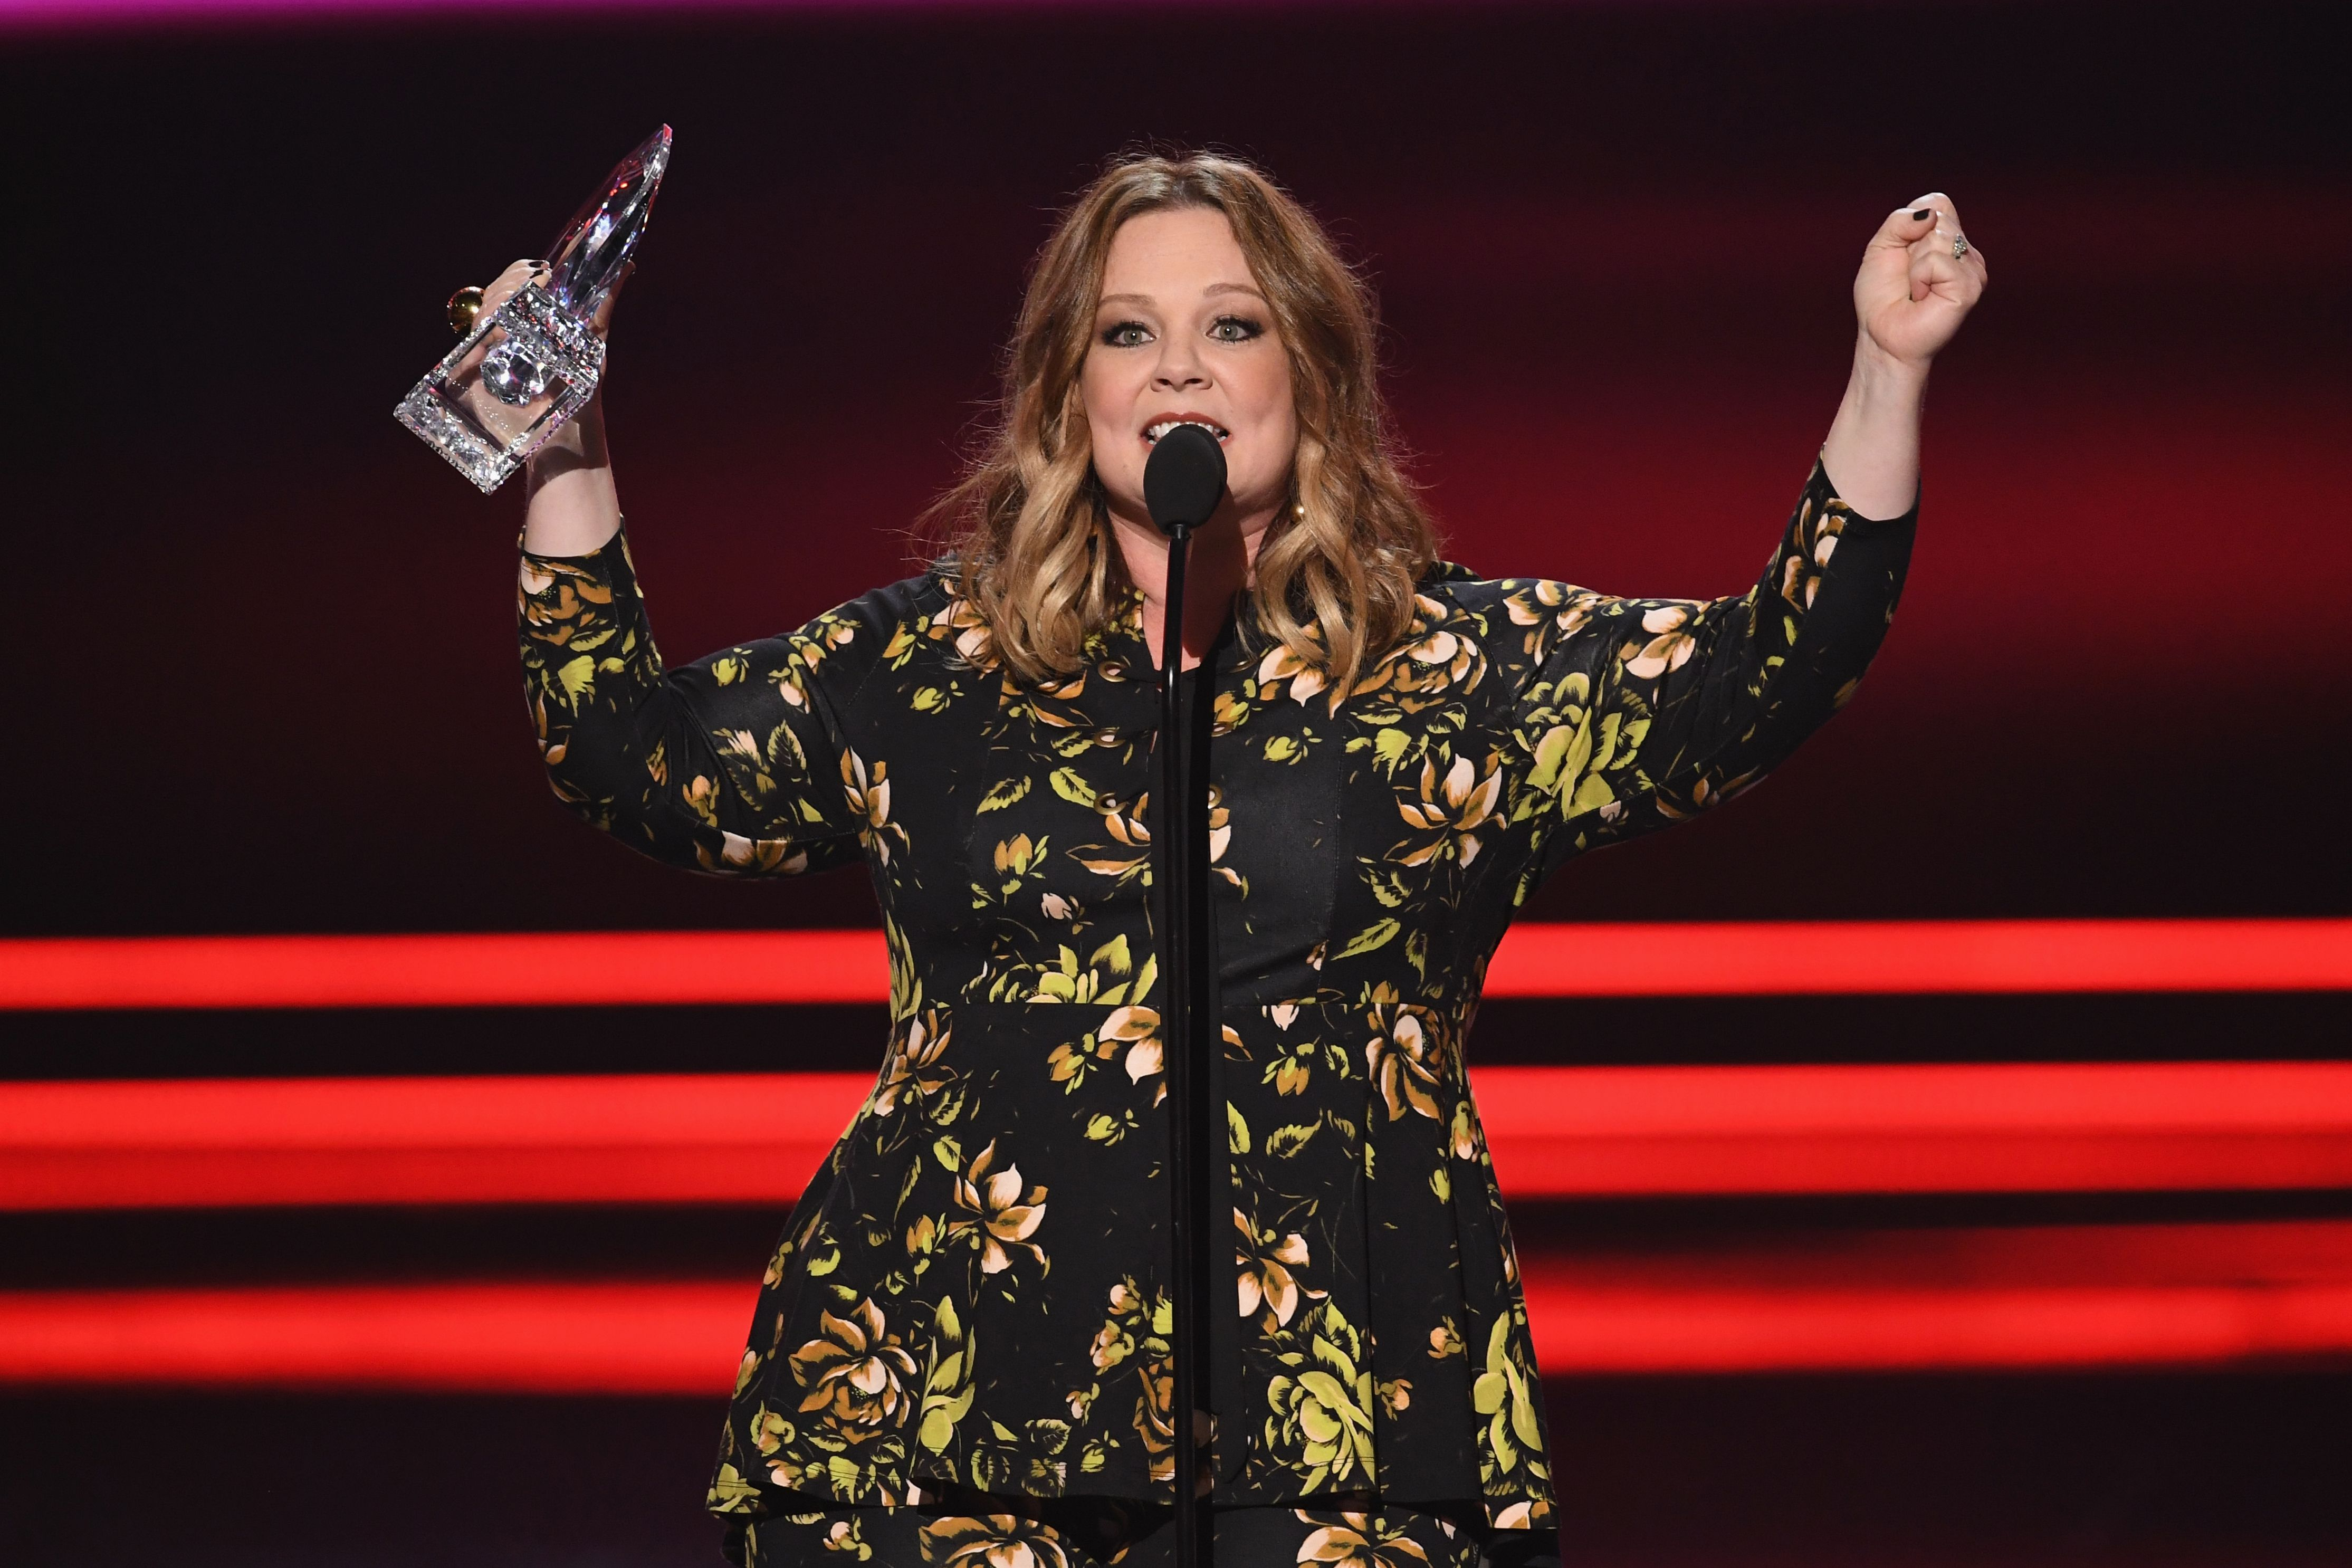 People's Choice Awards 2018: The winners list